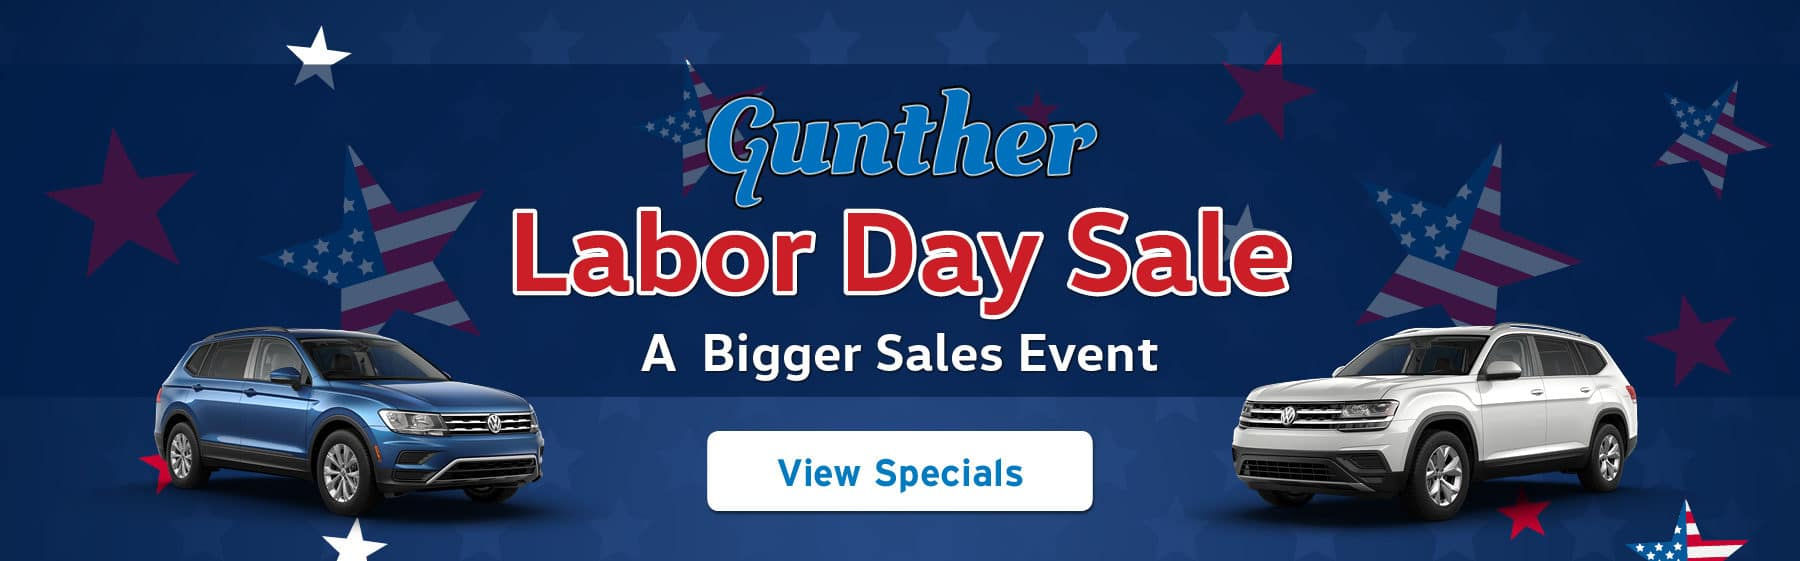 Gunther Labor Day Sale. A bigger sales event! View Specials.